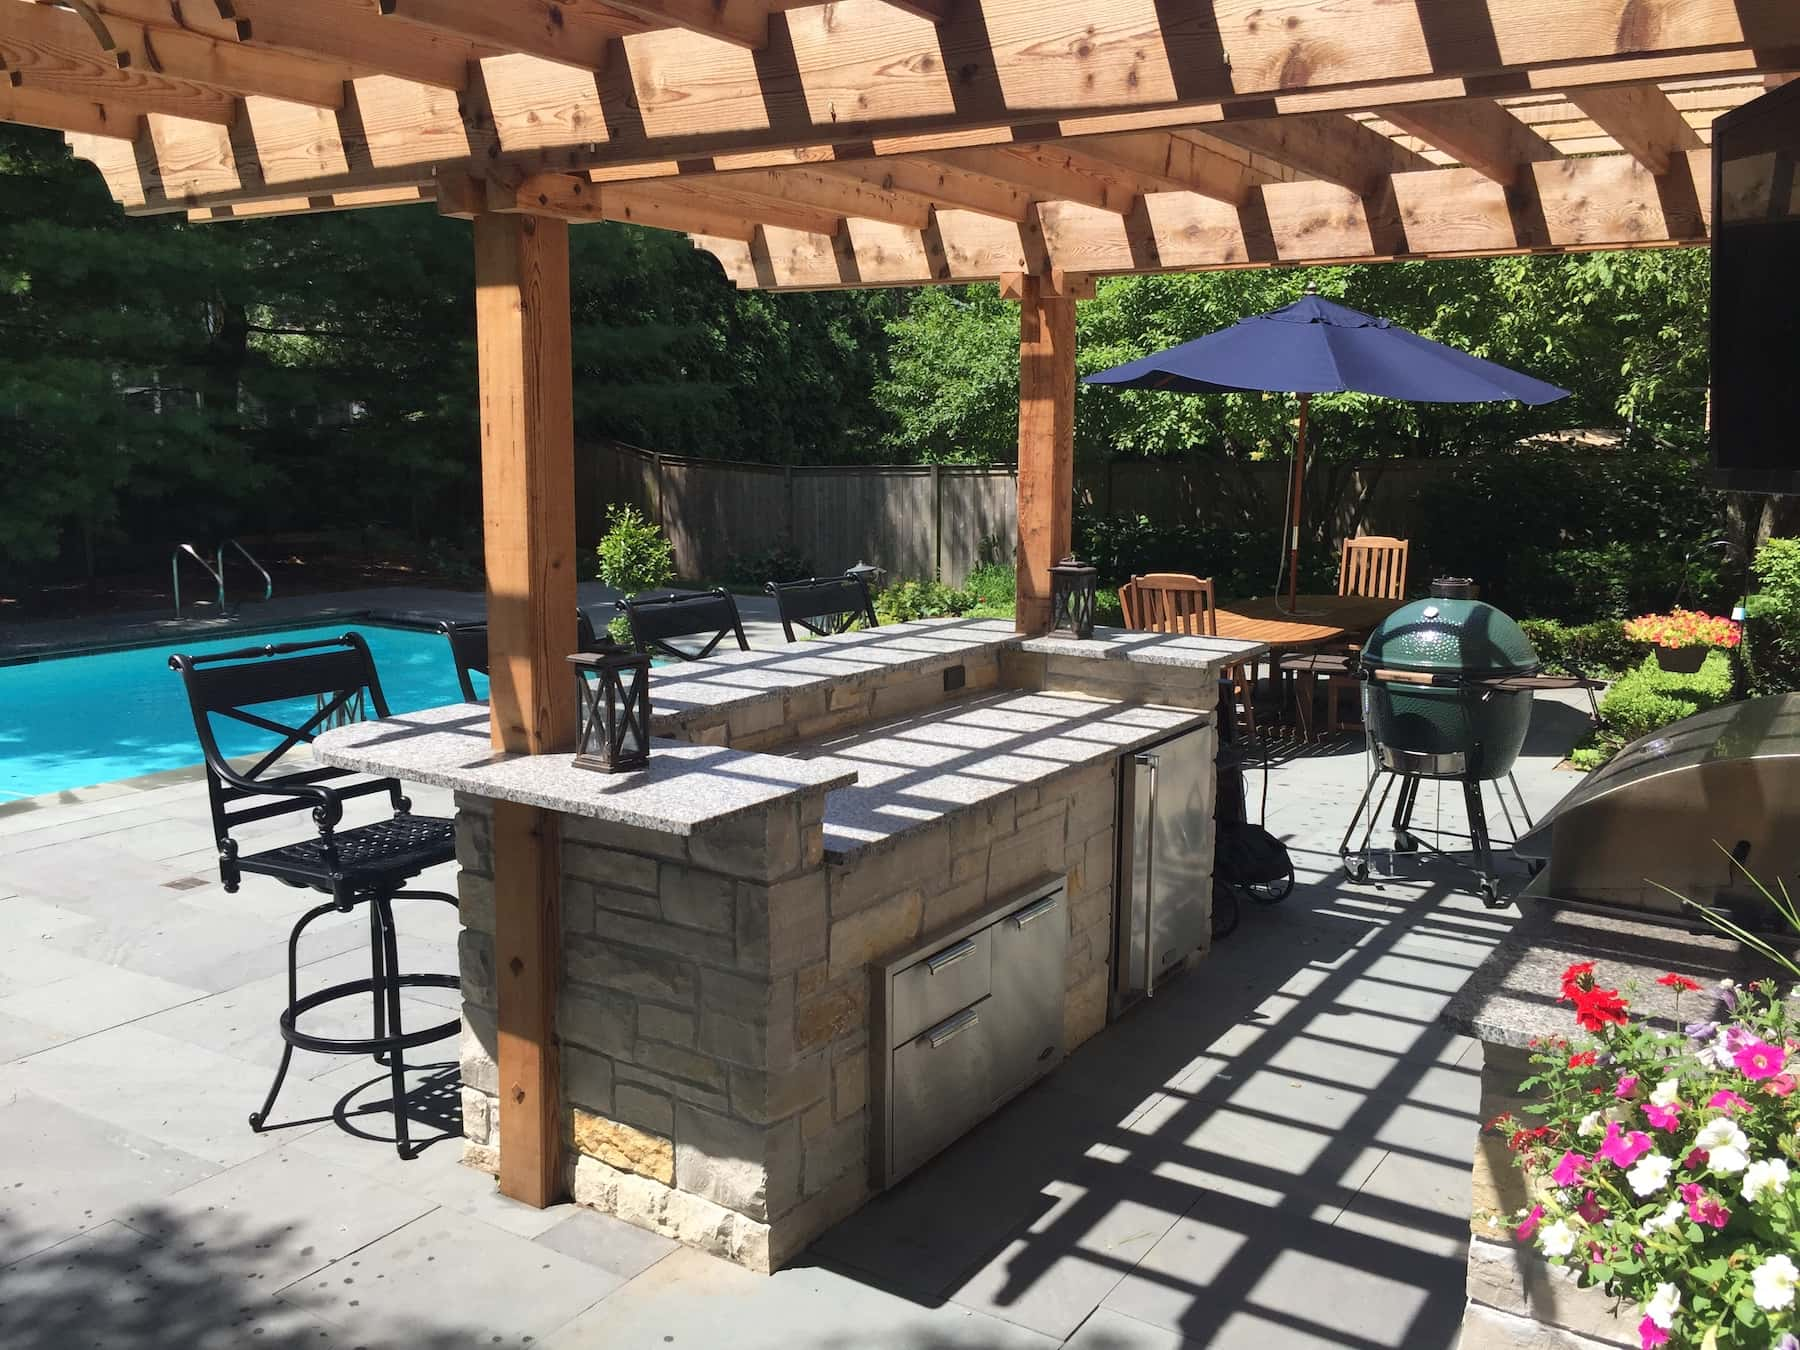 Pergola Outdoor Bar Stools Paver Patio Northbrook, IL